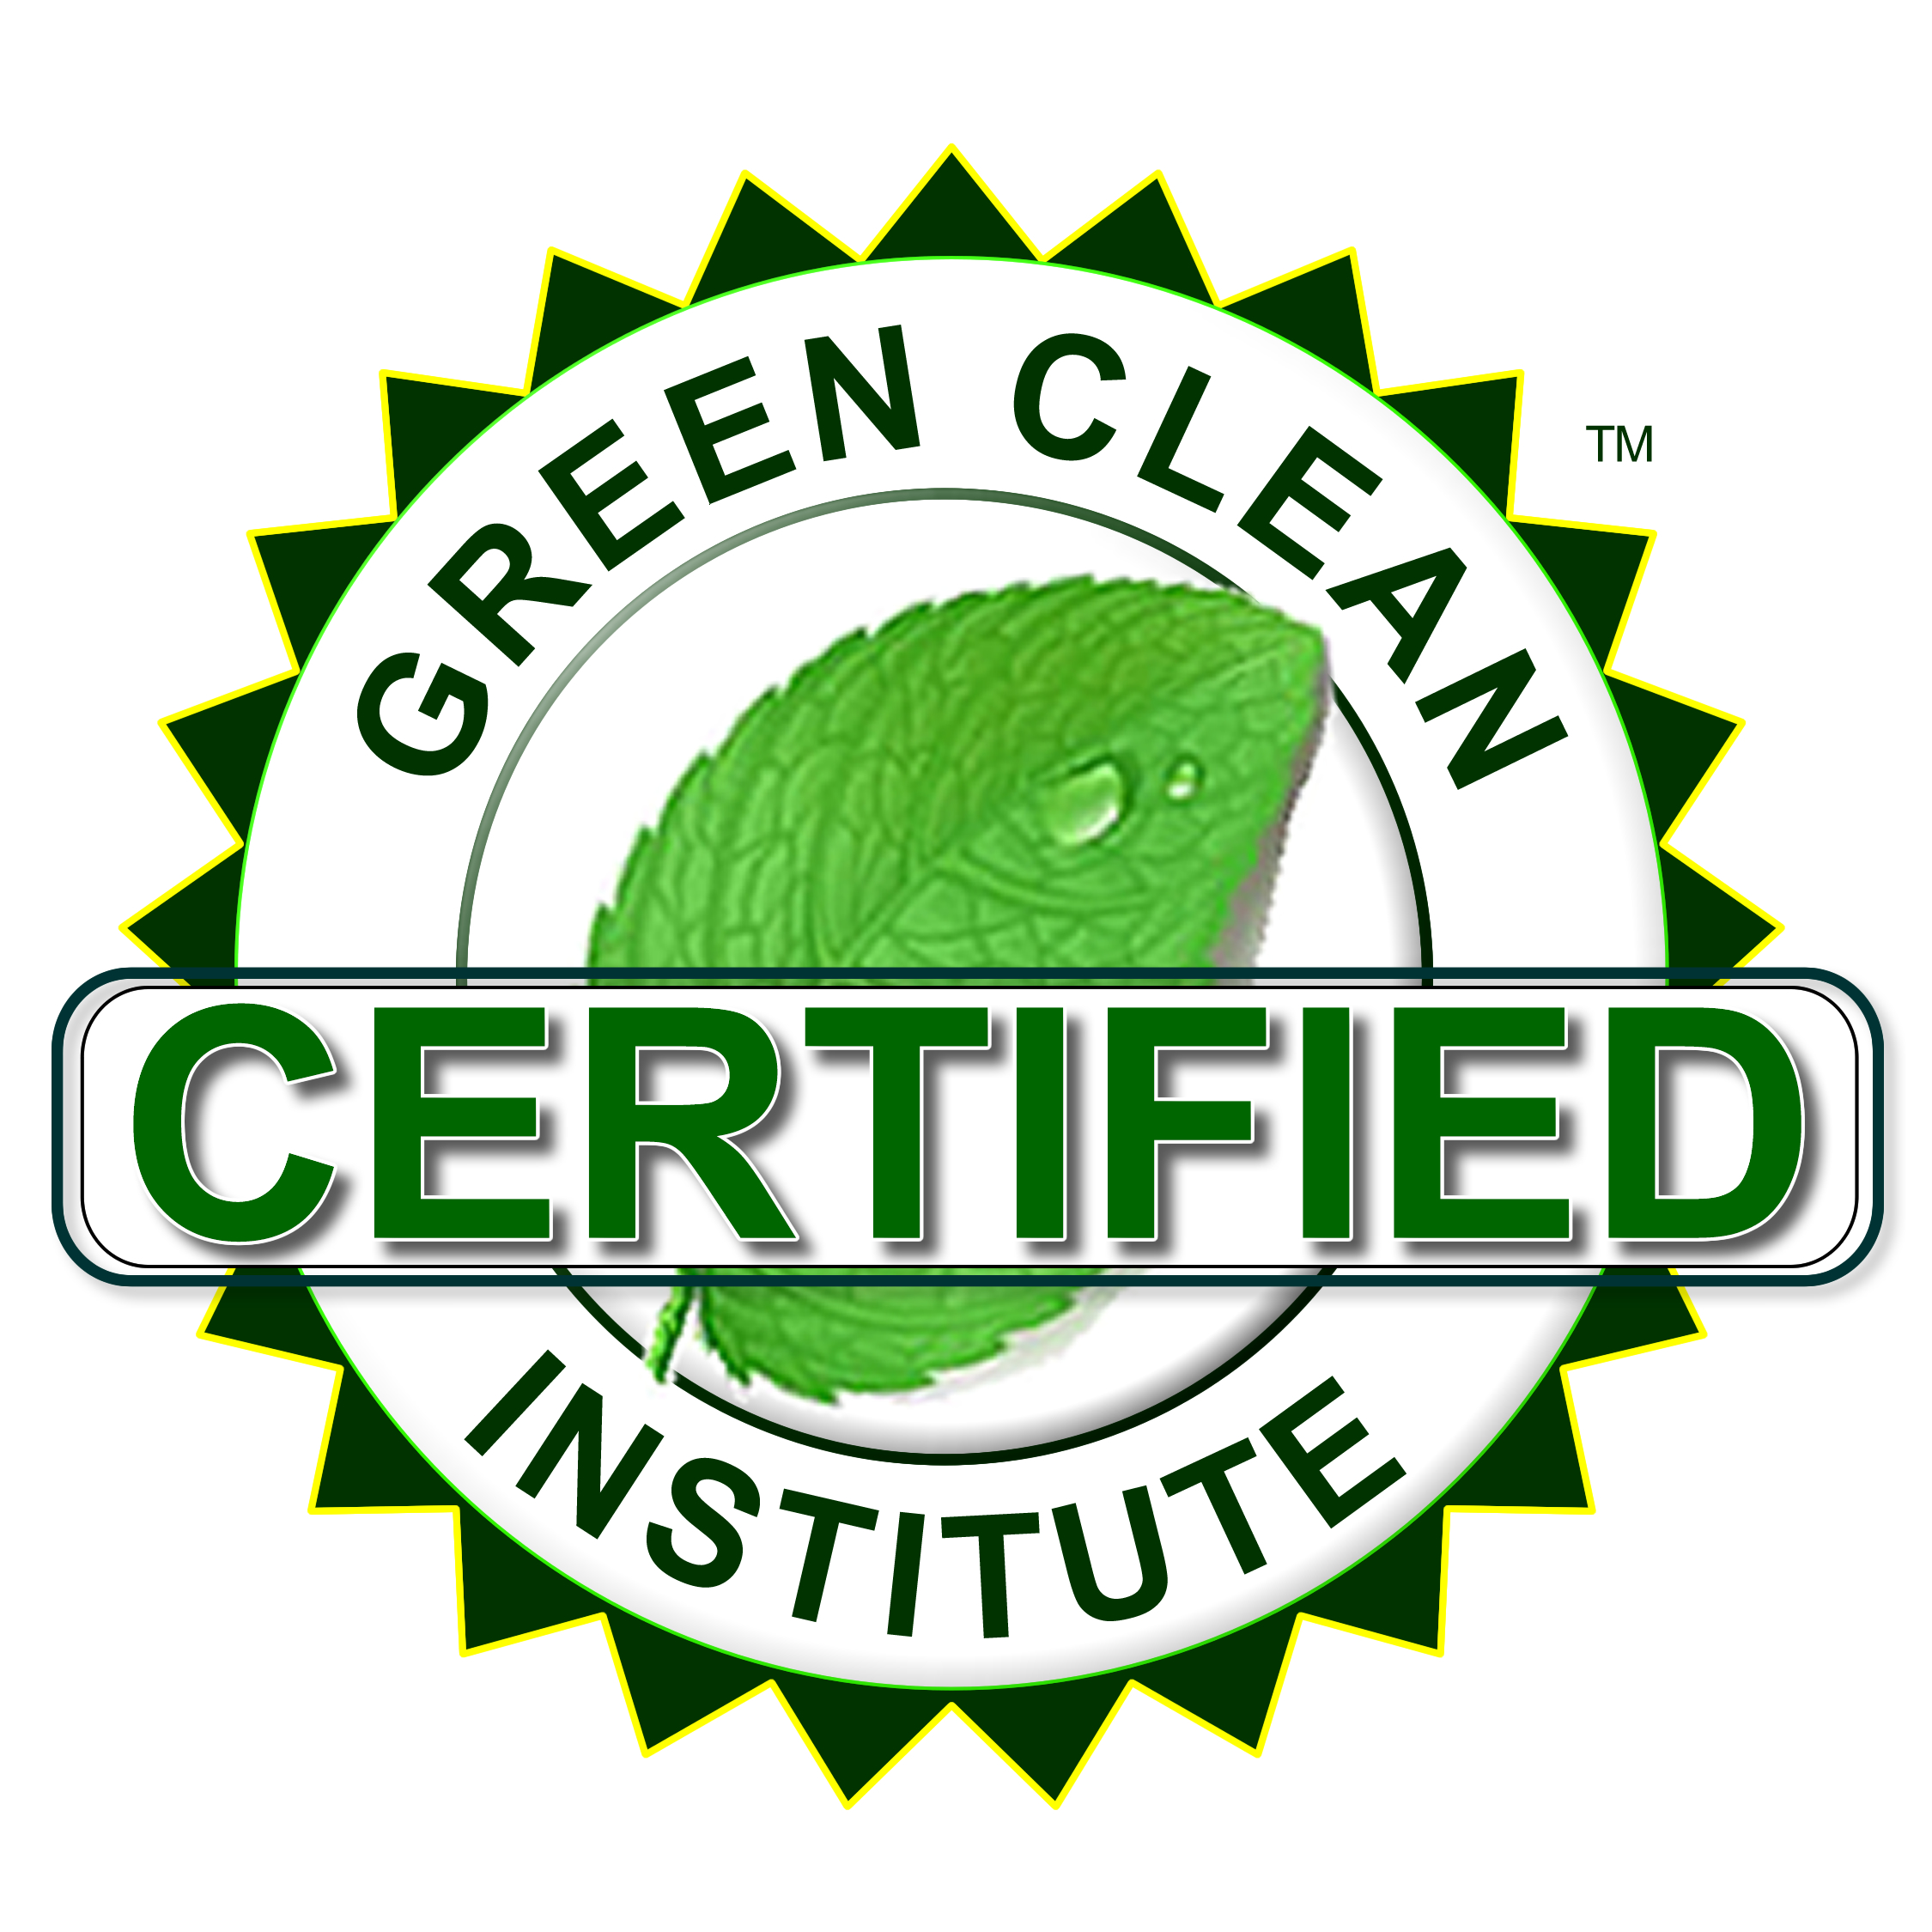 Green Clean Institute Certification